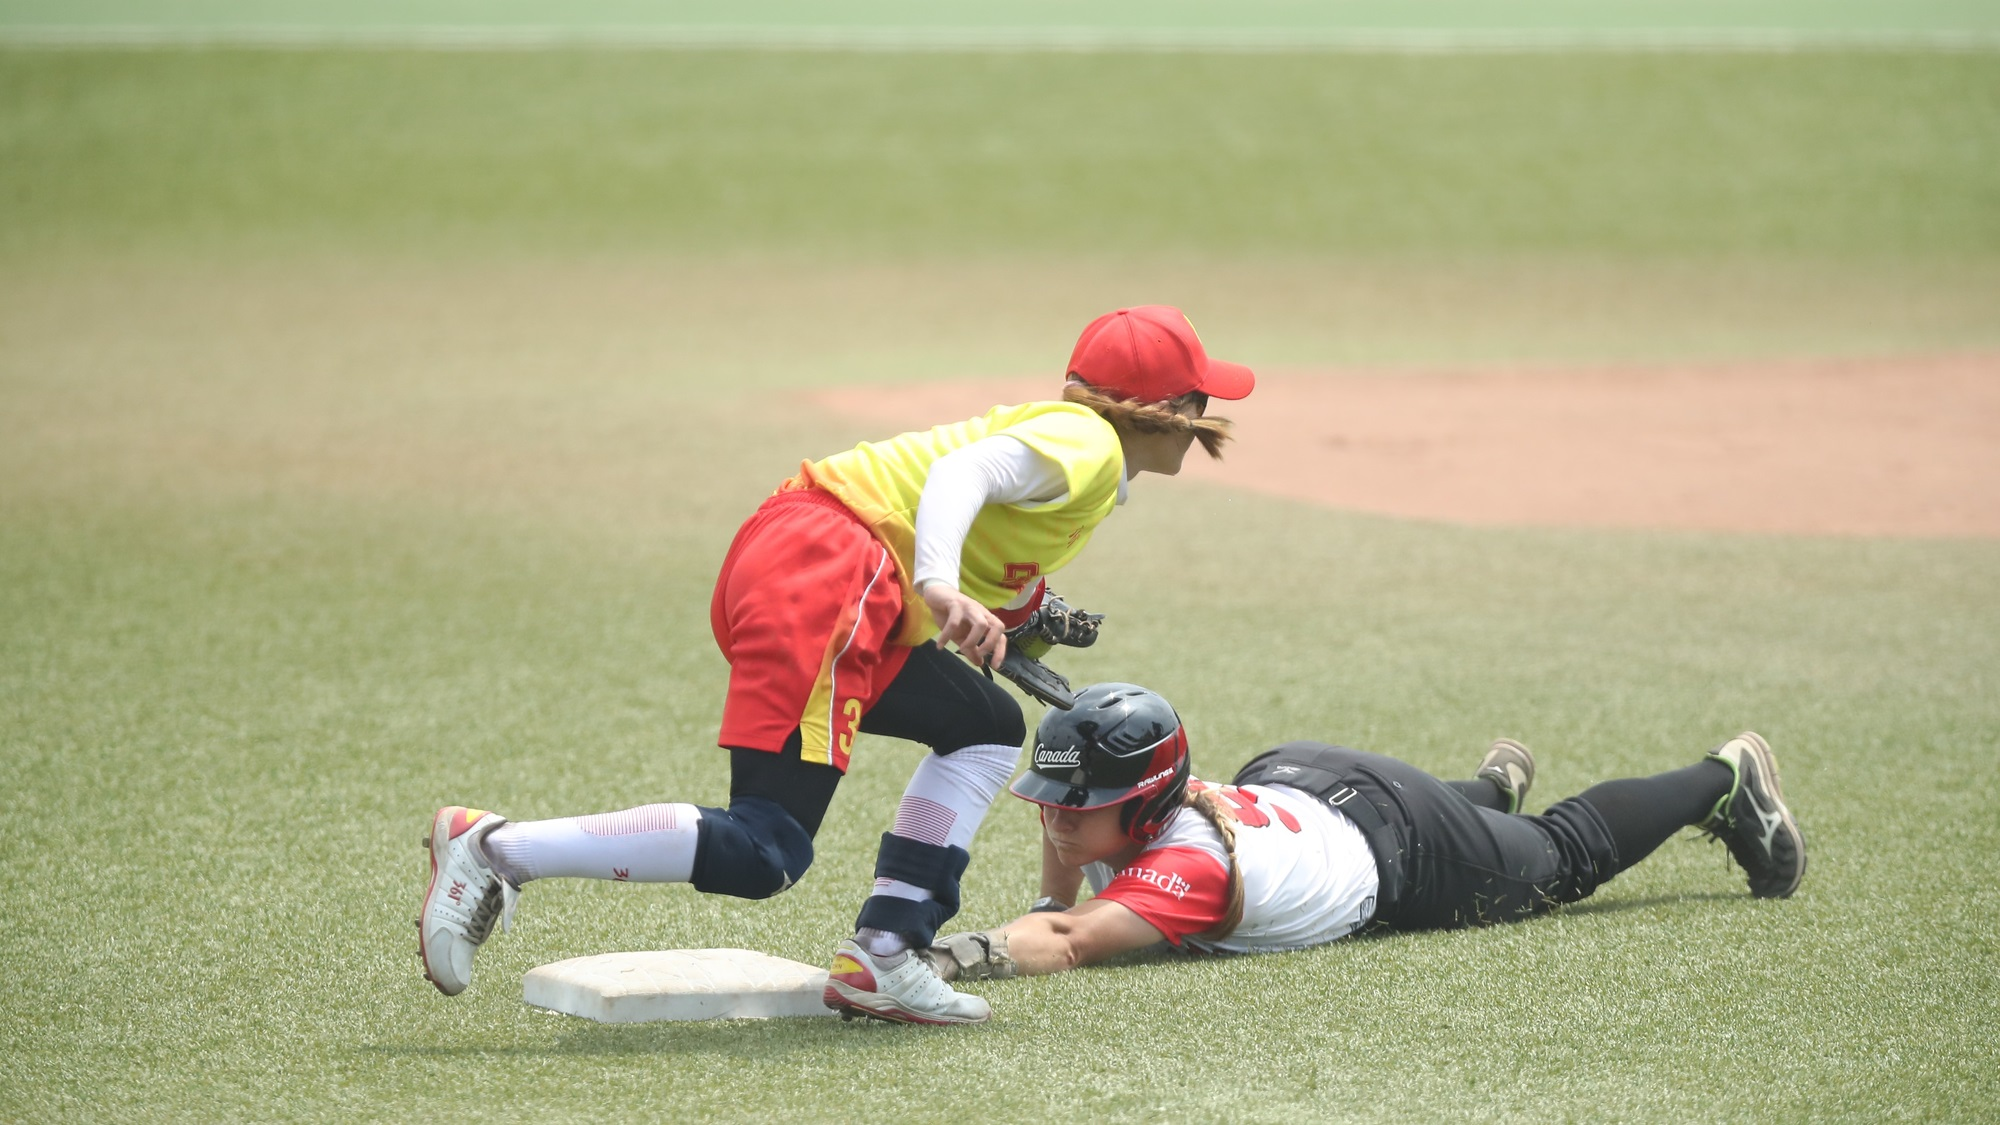 Canada sliding safe into second